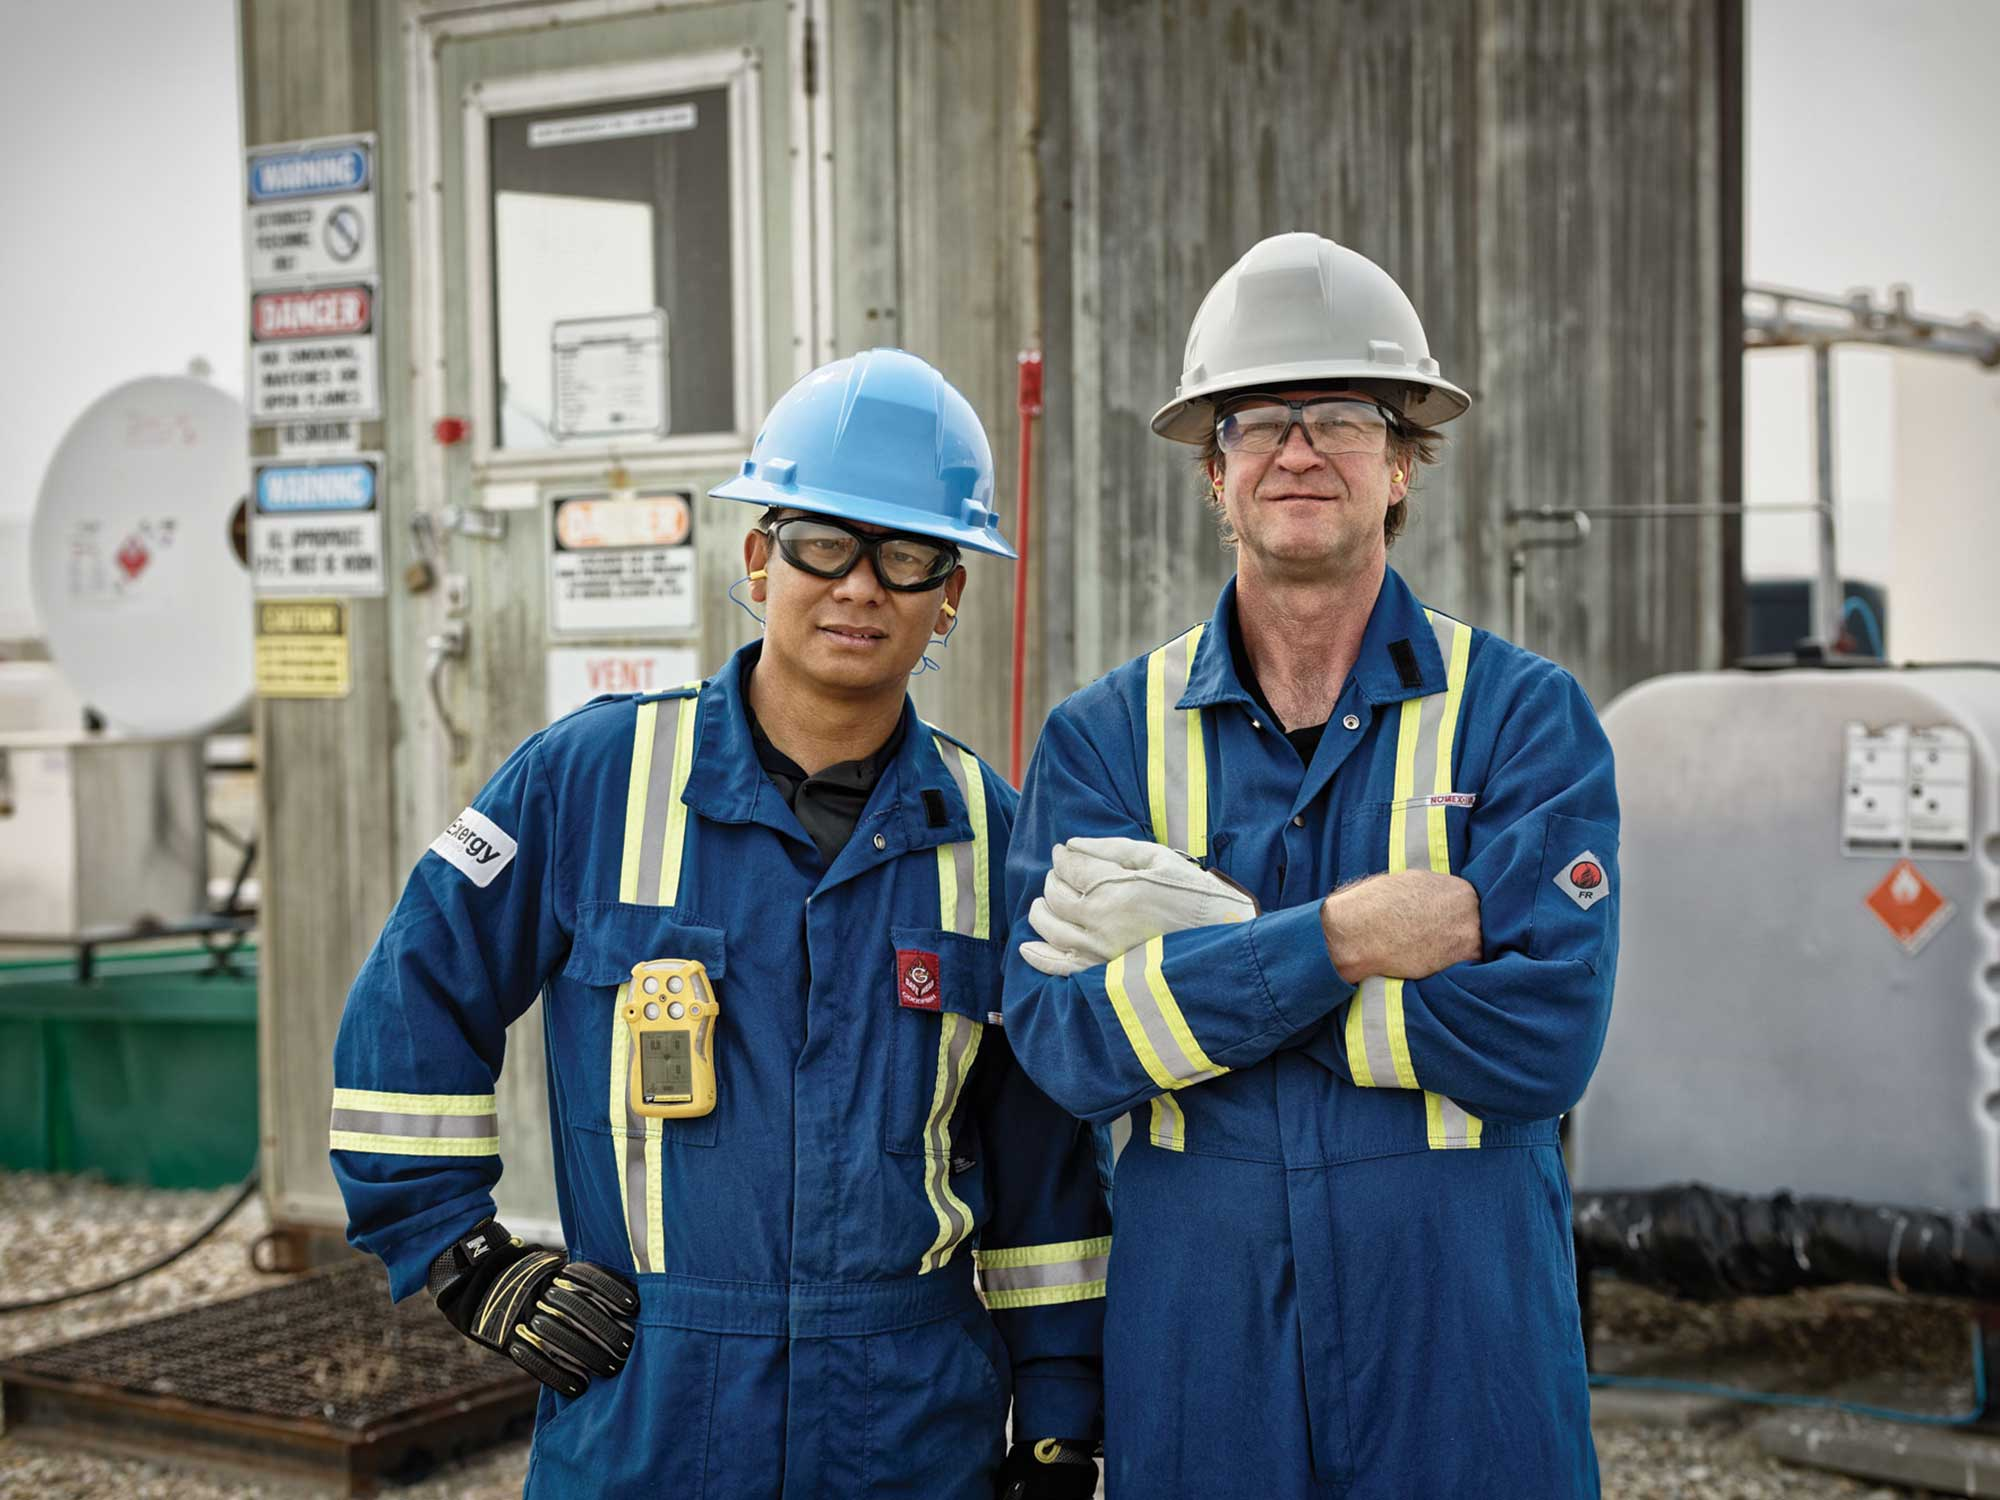 Brand photography for Energy Safety Canada by Jason Stand of two workers together on an oil and gas worksite by studio forum